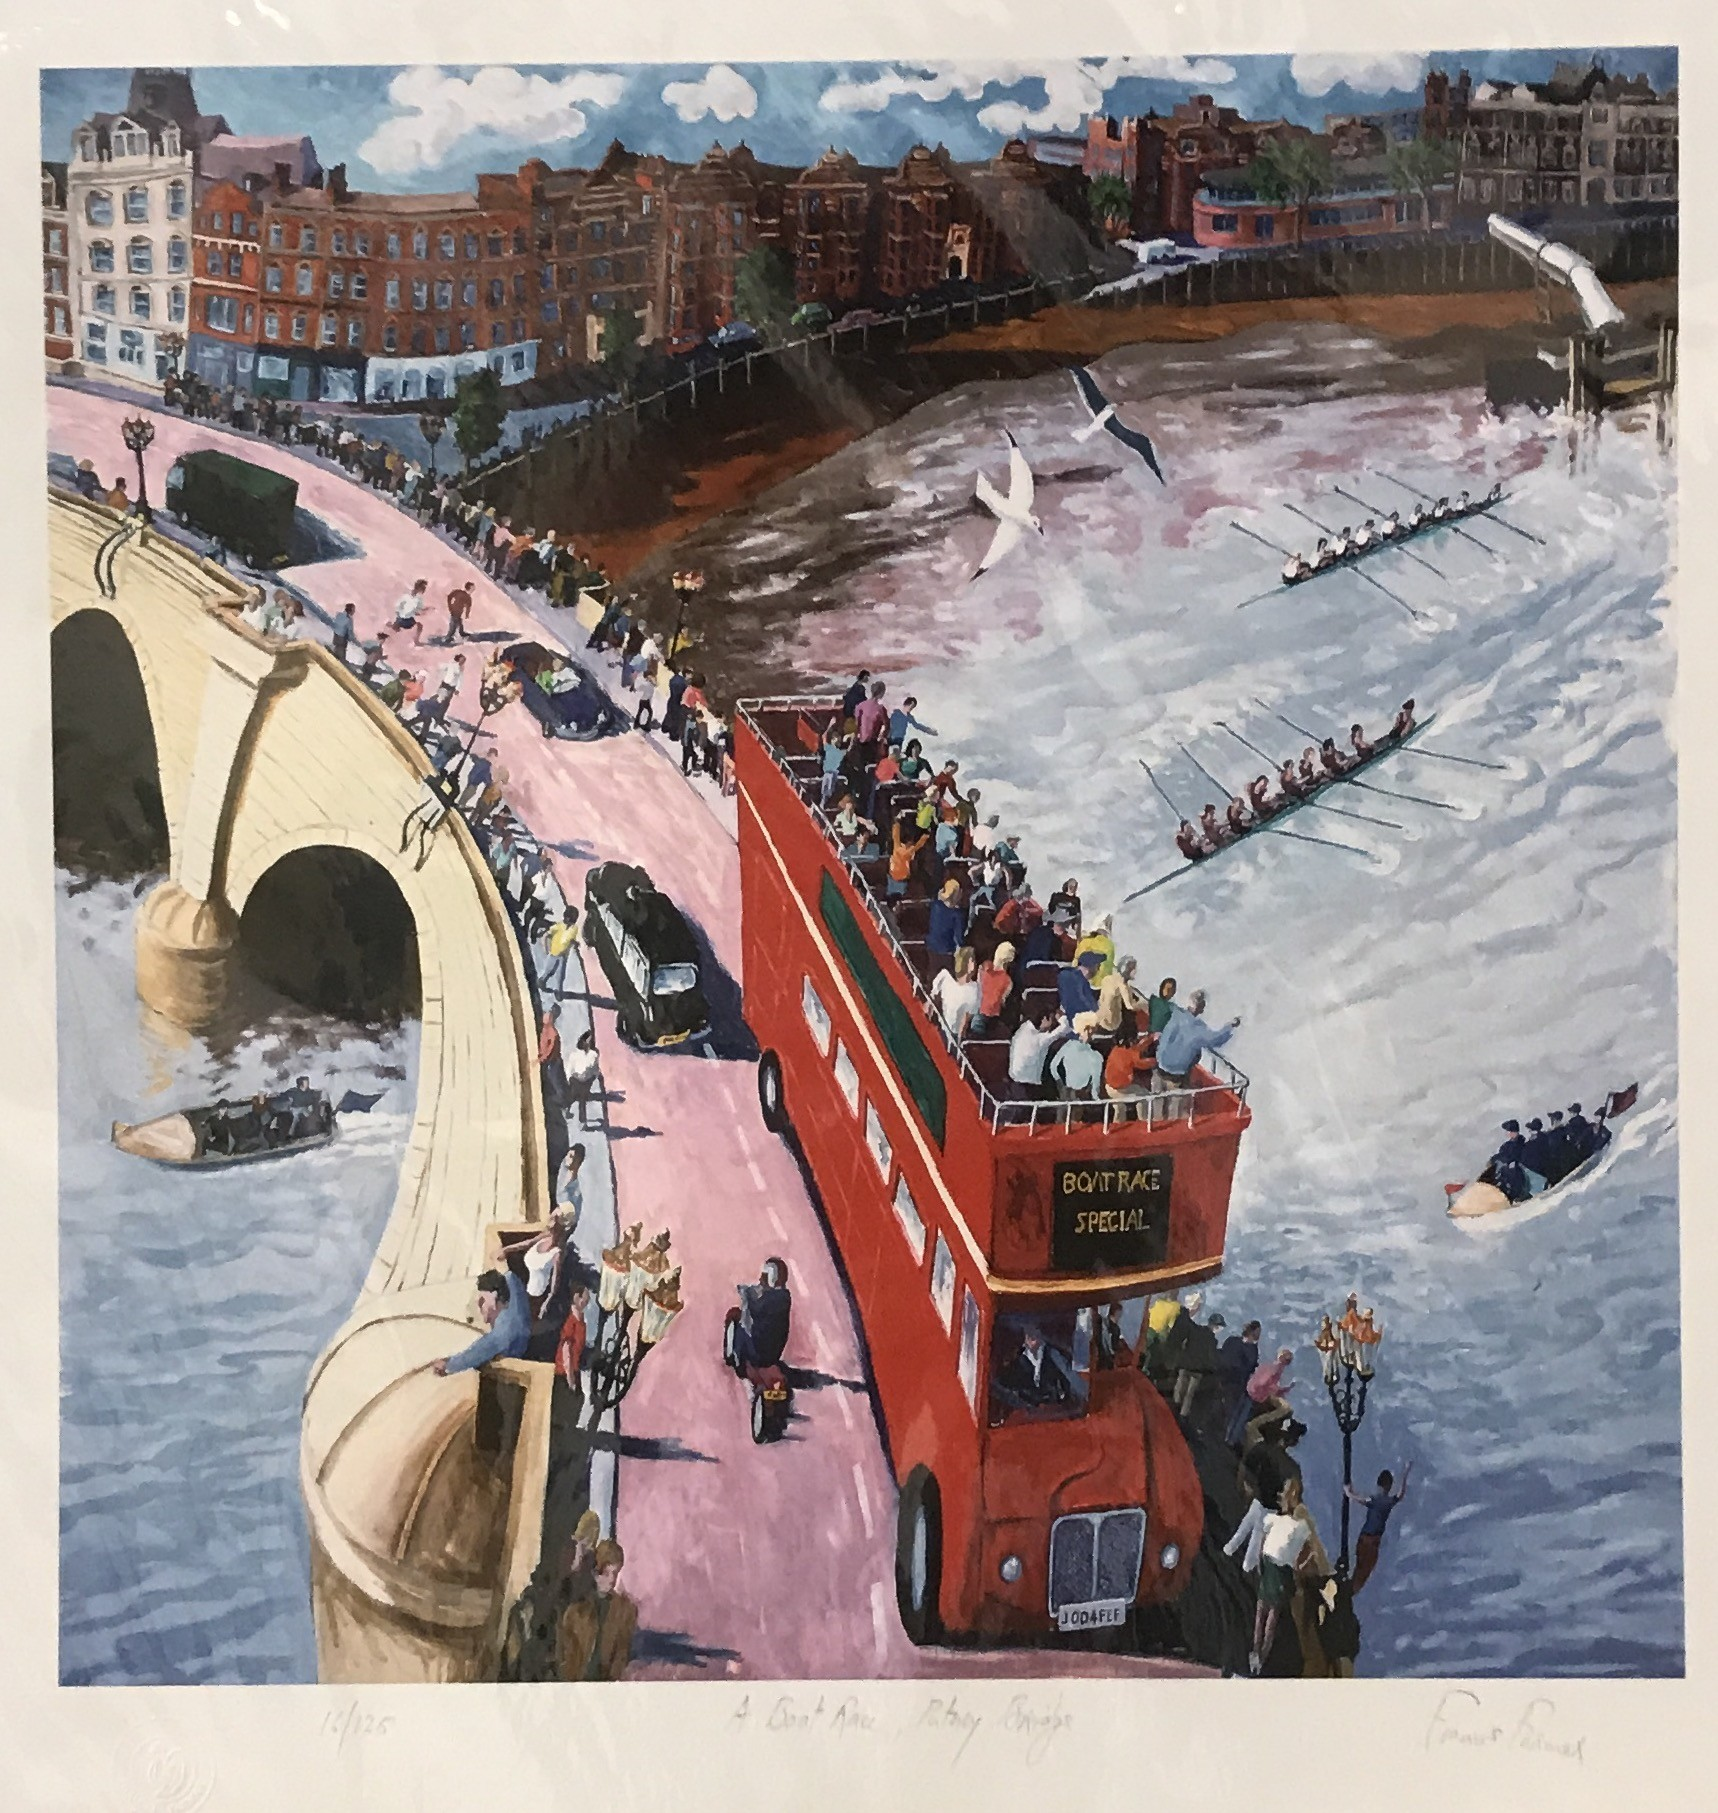 <span class=&#34;link fancybox-details-link&#34;><a href=&#34;/artists/35-francis-farmer/works/95-francis-farmer-london-boat-race/&#34;>View Detail Page</a></span><div class=&#34;artist&#34;><strong>Francis Farmer</strong></div> <div class=&#34;title&#34;><em>London Boat Race</em></div> <div class=&#34;medium&#34;>Limited Edition Print (framed)</div> <div class=&#34;dimensions&#34;>48 x 48 cm</div> <div class=&#34;edition_details&#34;>16/125</div><div class=&#34;price&#34;>£250.00</div>